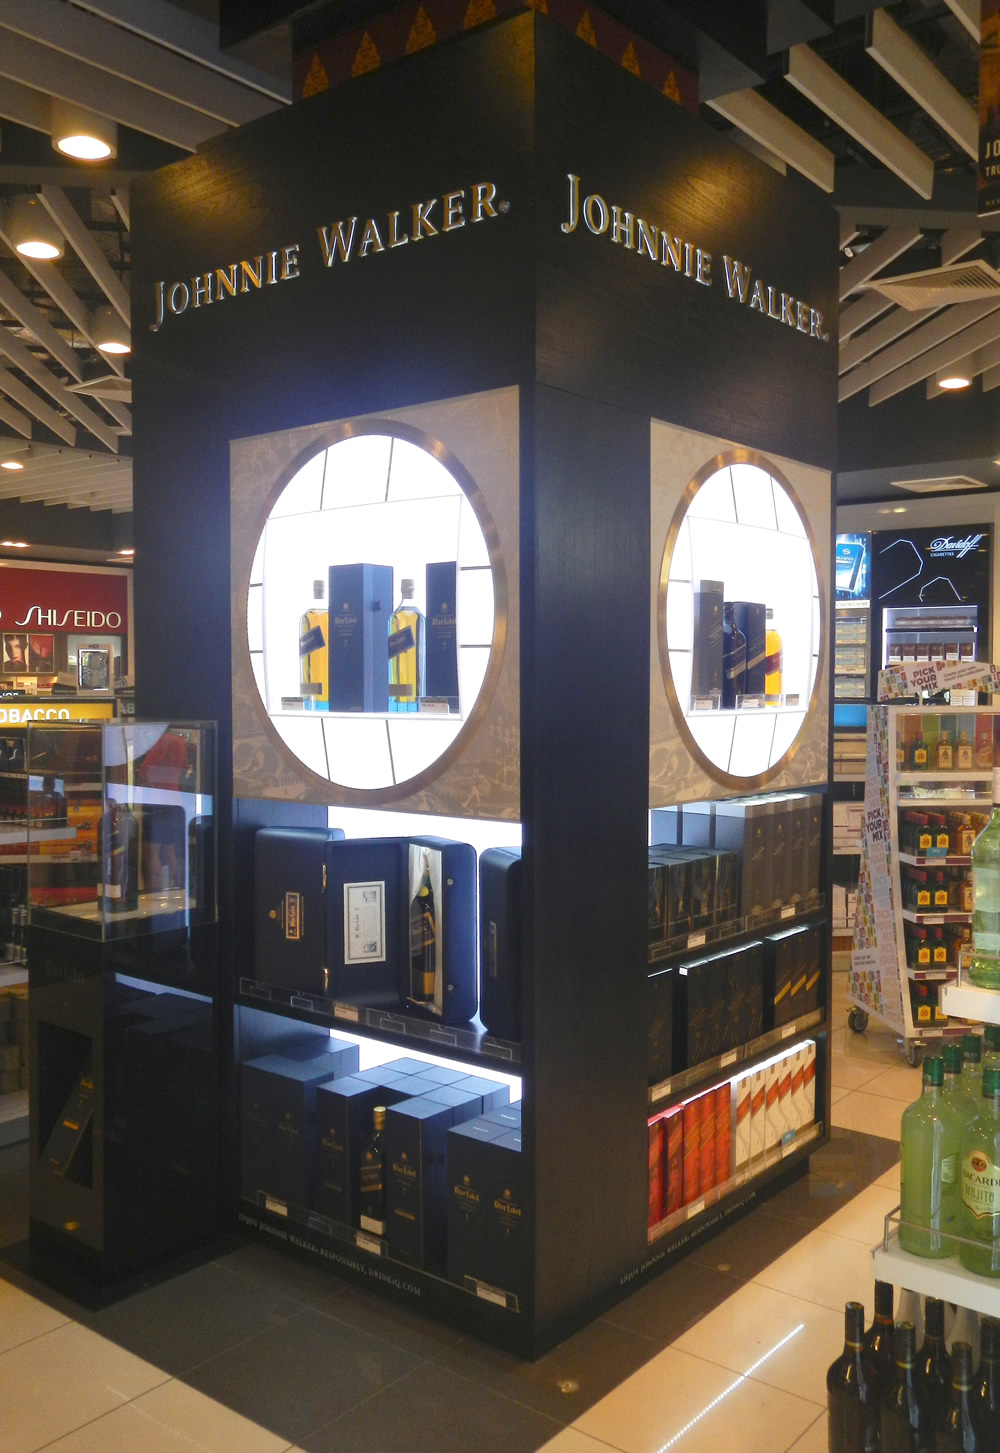 Airport Duty Free Retail Displays - Concourse Display Management